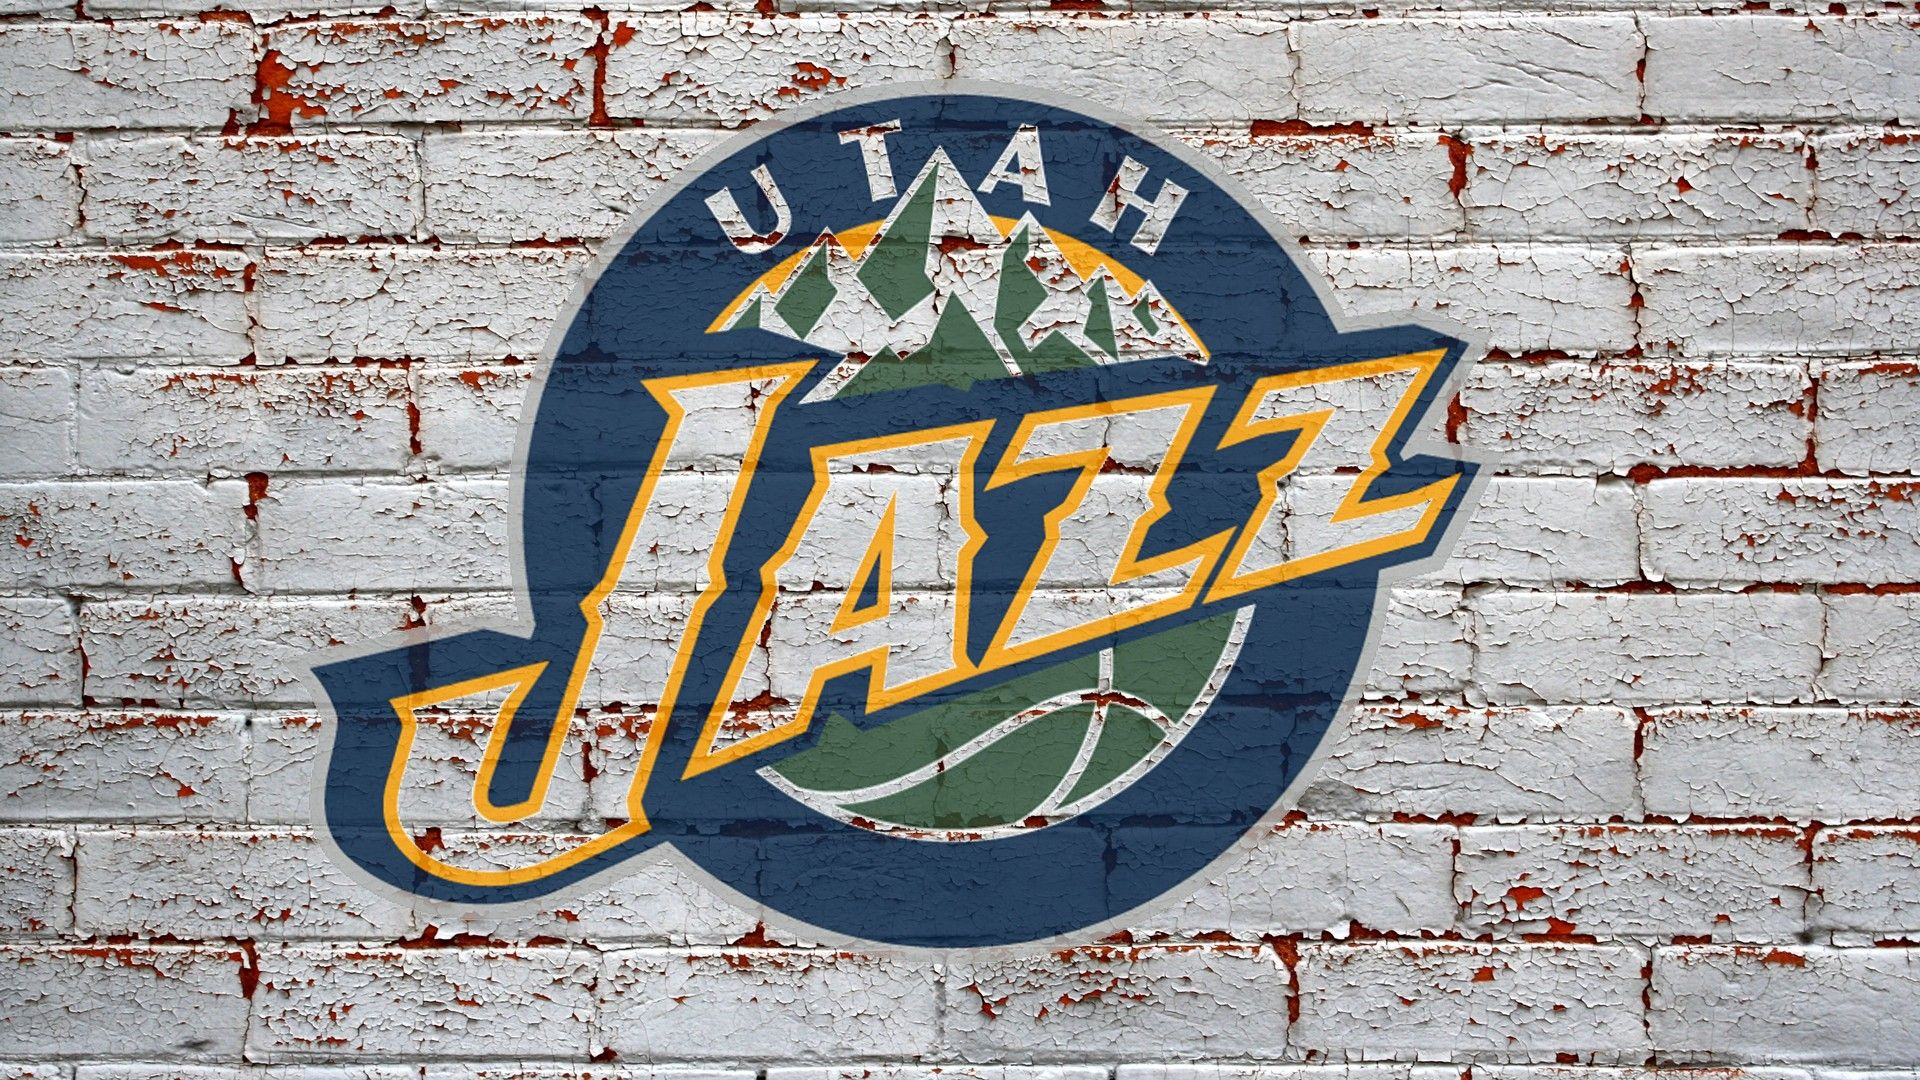 Utah Jazz Wallpapers For Facebook Full HD Pictures 1600x1200 56